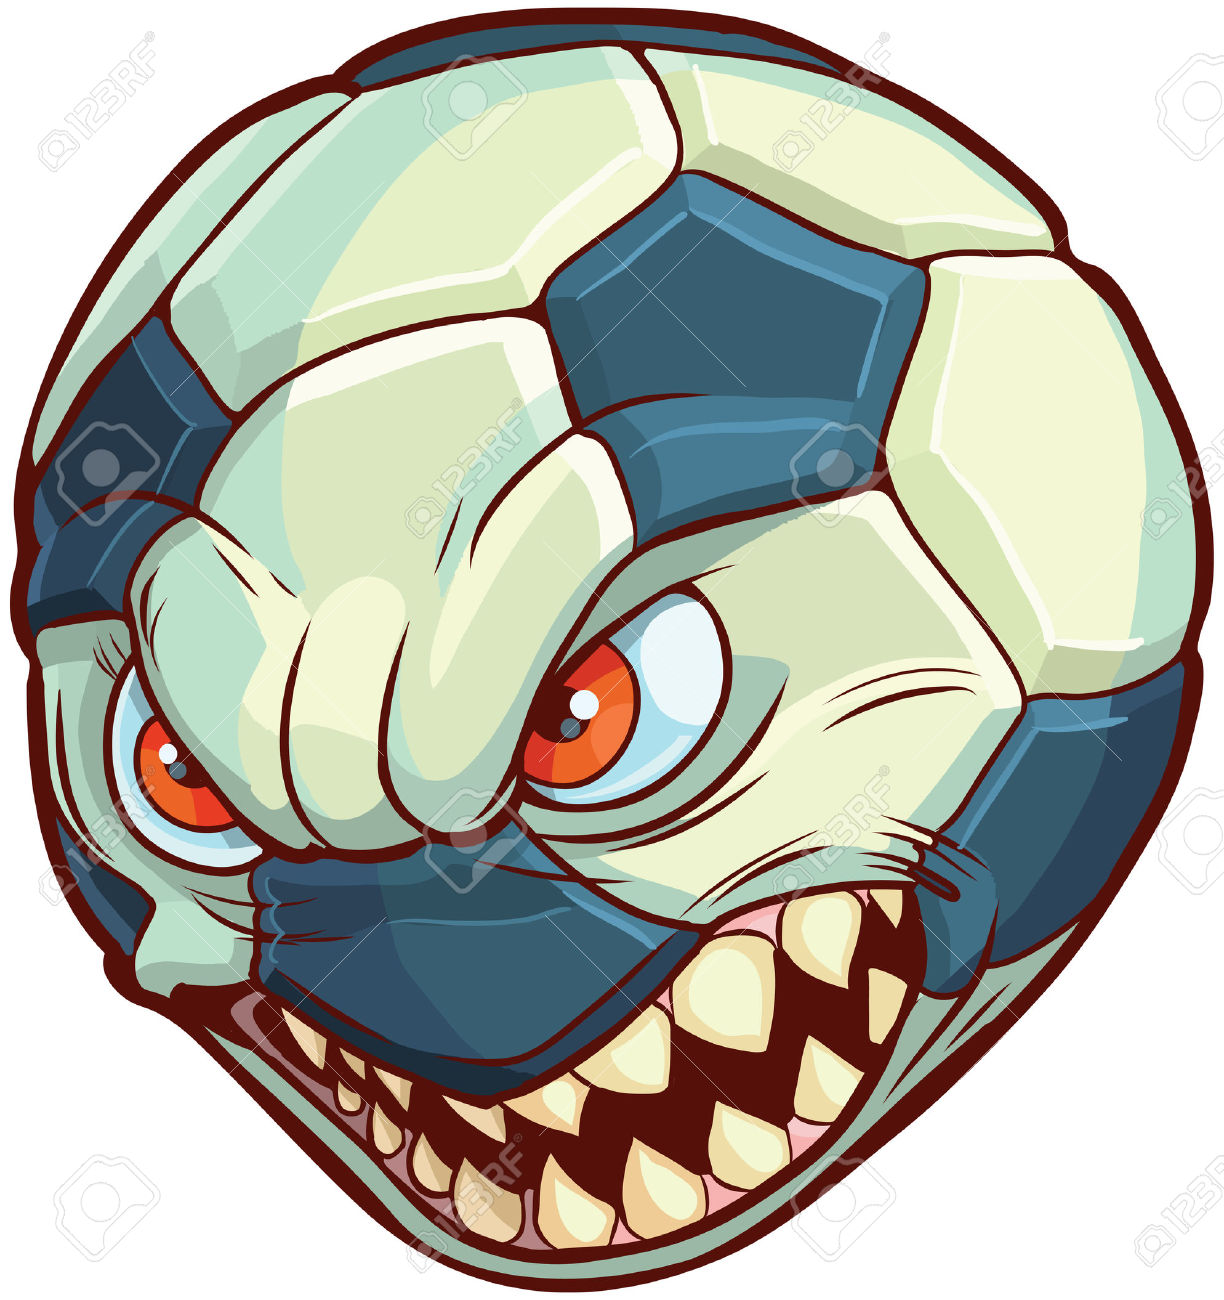 Soccer ball cartoon clipart banner free stock Cartoon Clip Art Illustration Of A Soccer Ball Or Football With ... banner free stock